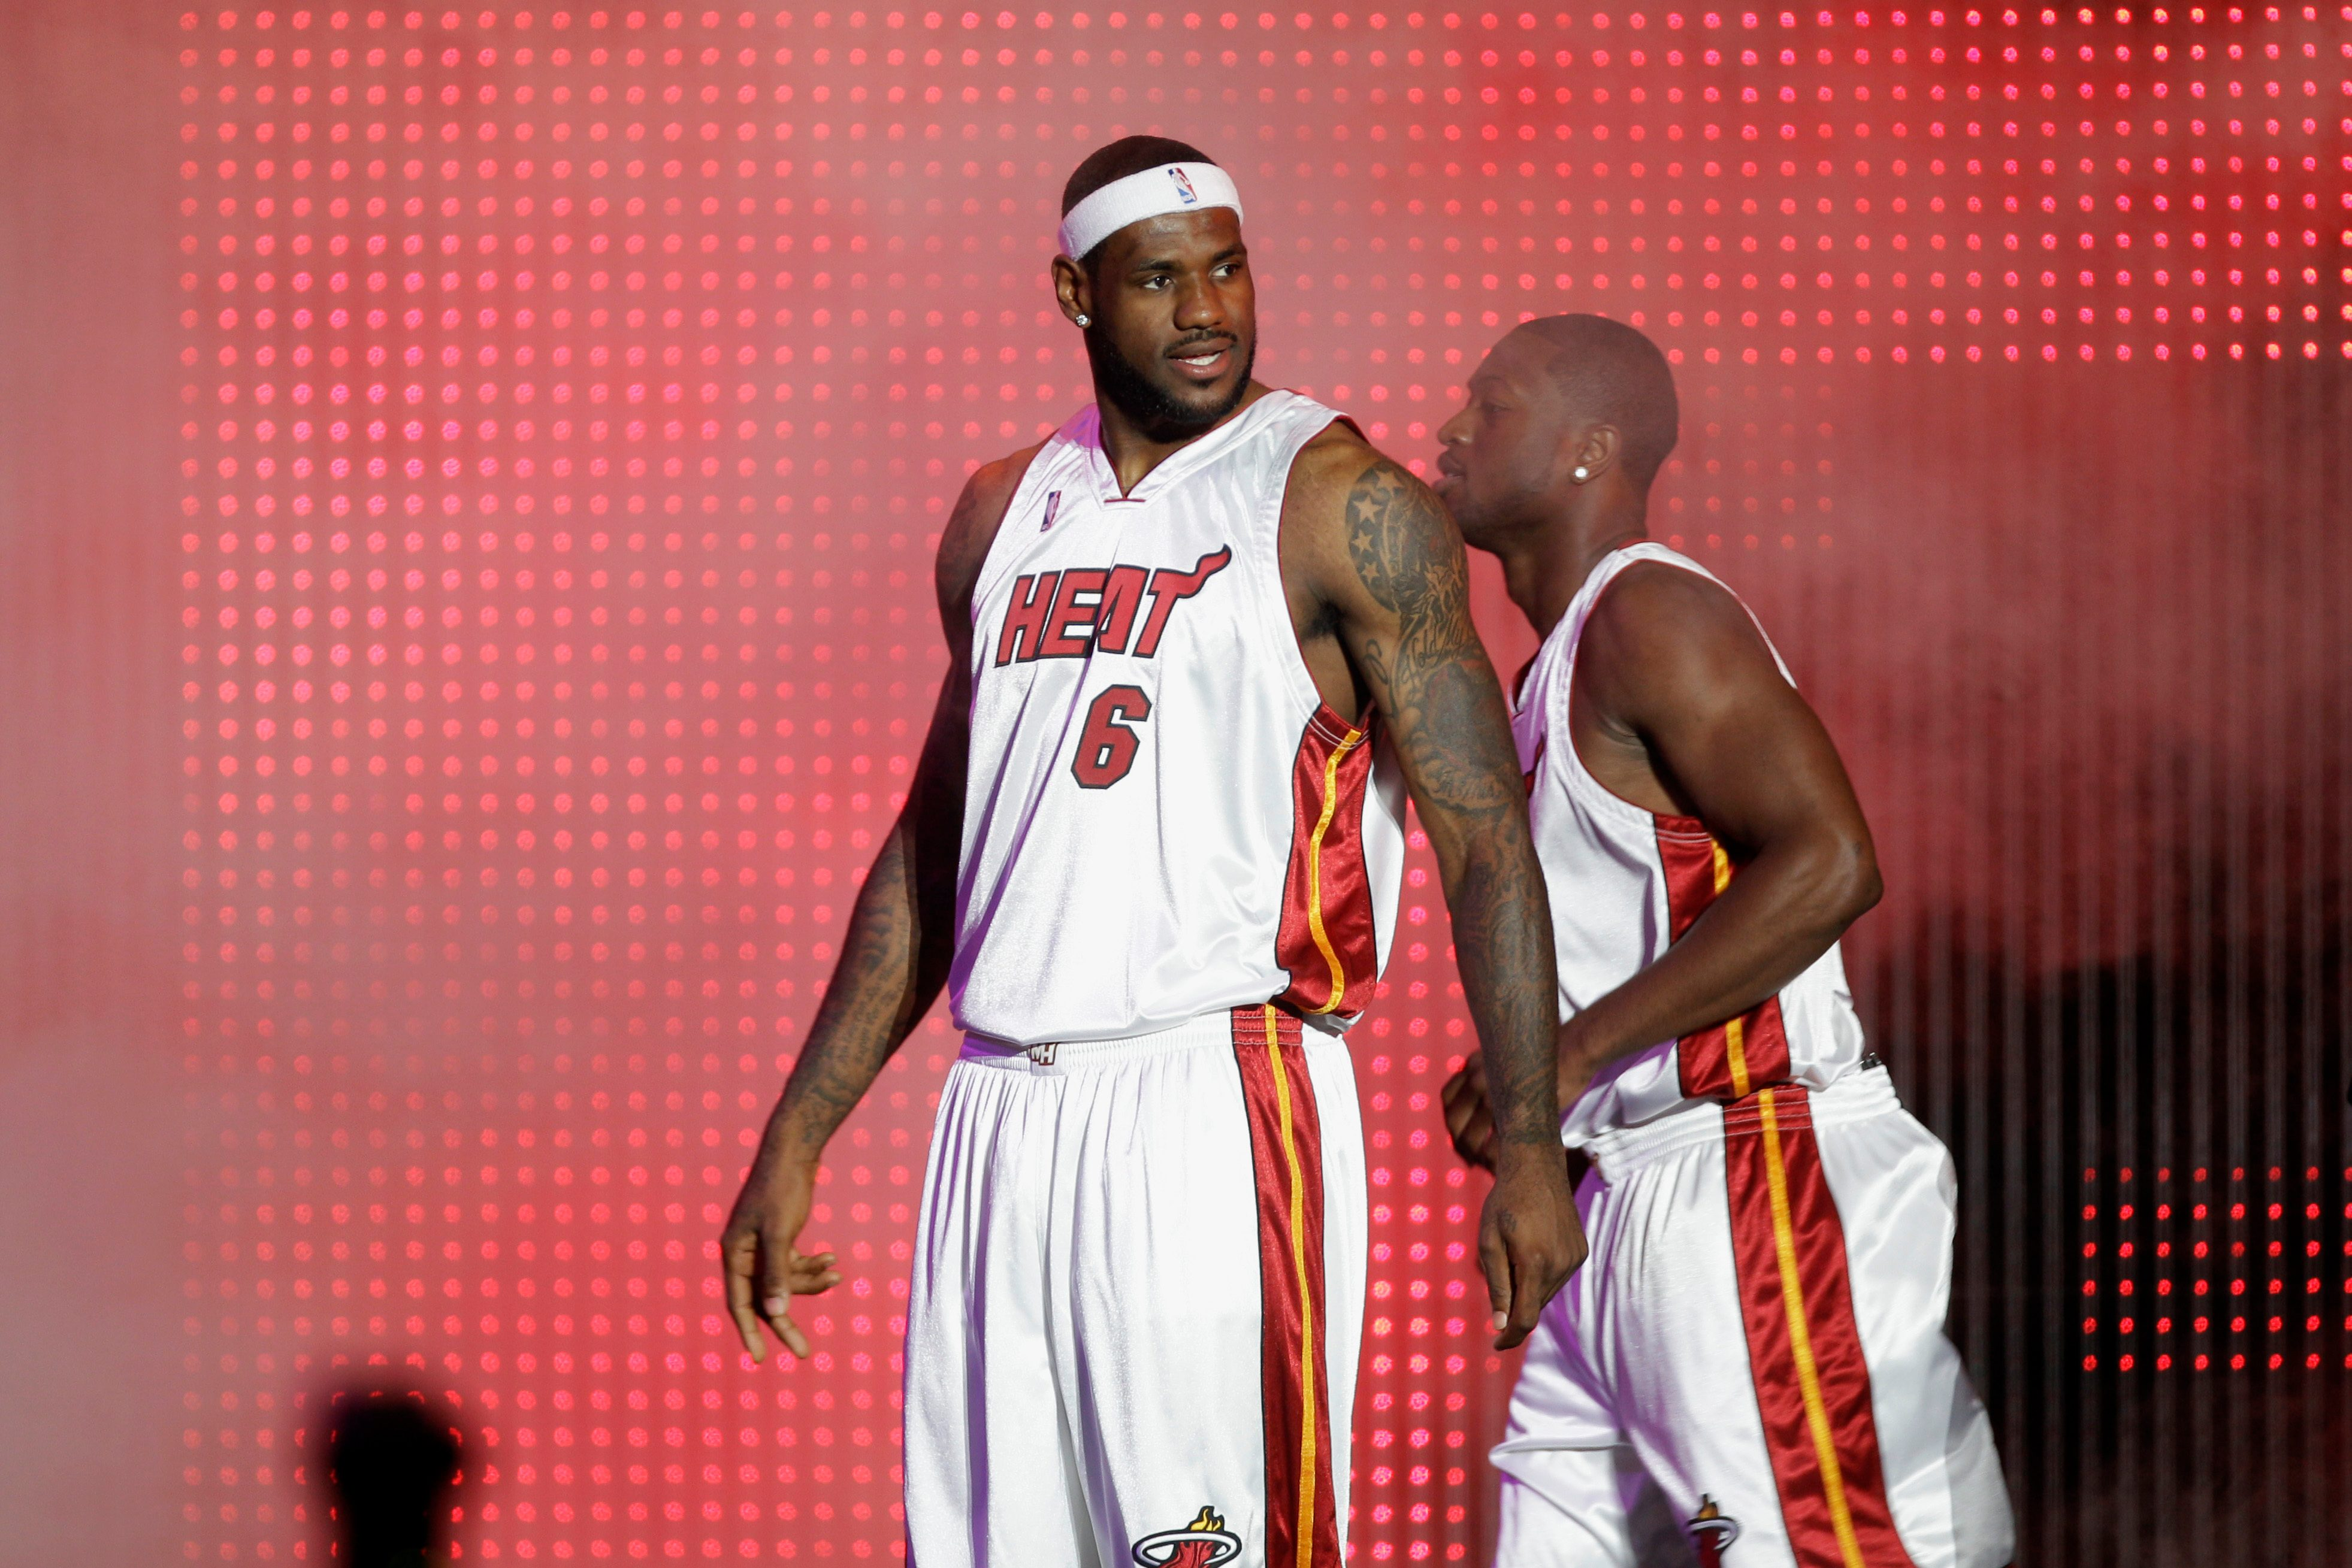 Mandatory Credit: Photo by J Pat Carter/AP/Shutterstock (5975859l) LeBron James LeBron James (6) appears at Fan Fest in Miami Miami Heat Fan Fest Basketball, Miami, USA